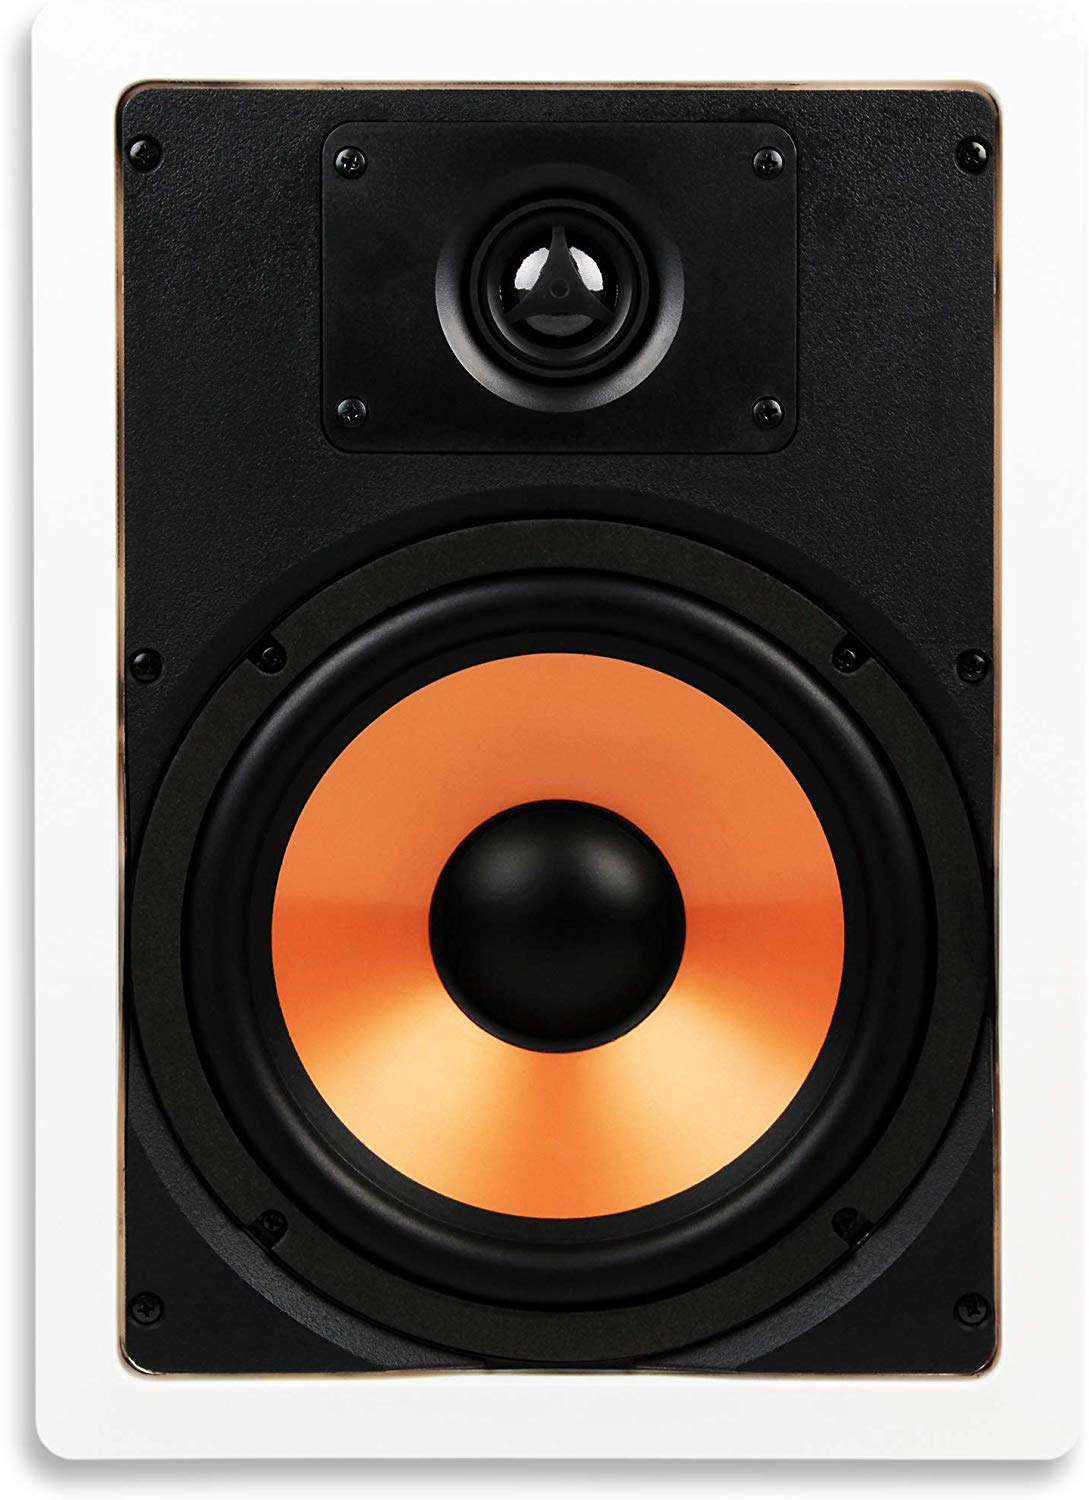 contender for best in wall speakers champion - Micca M-8S